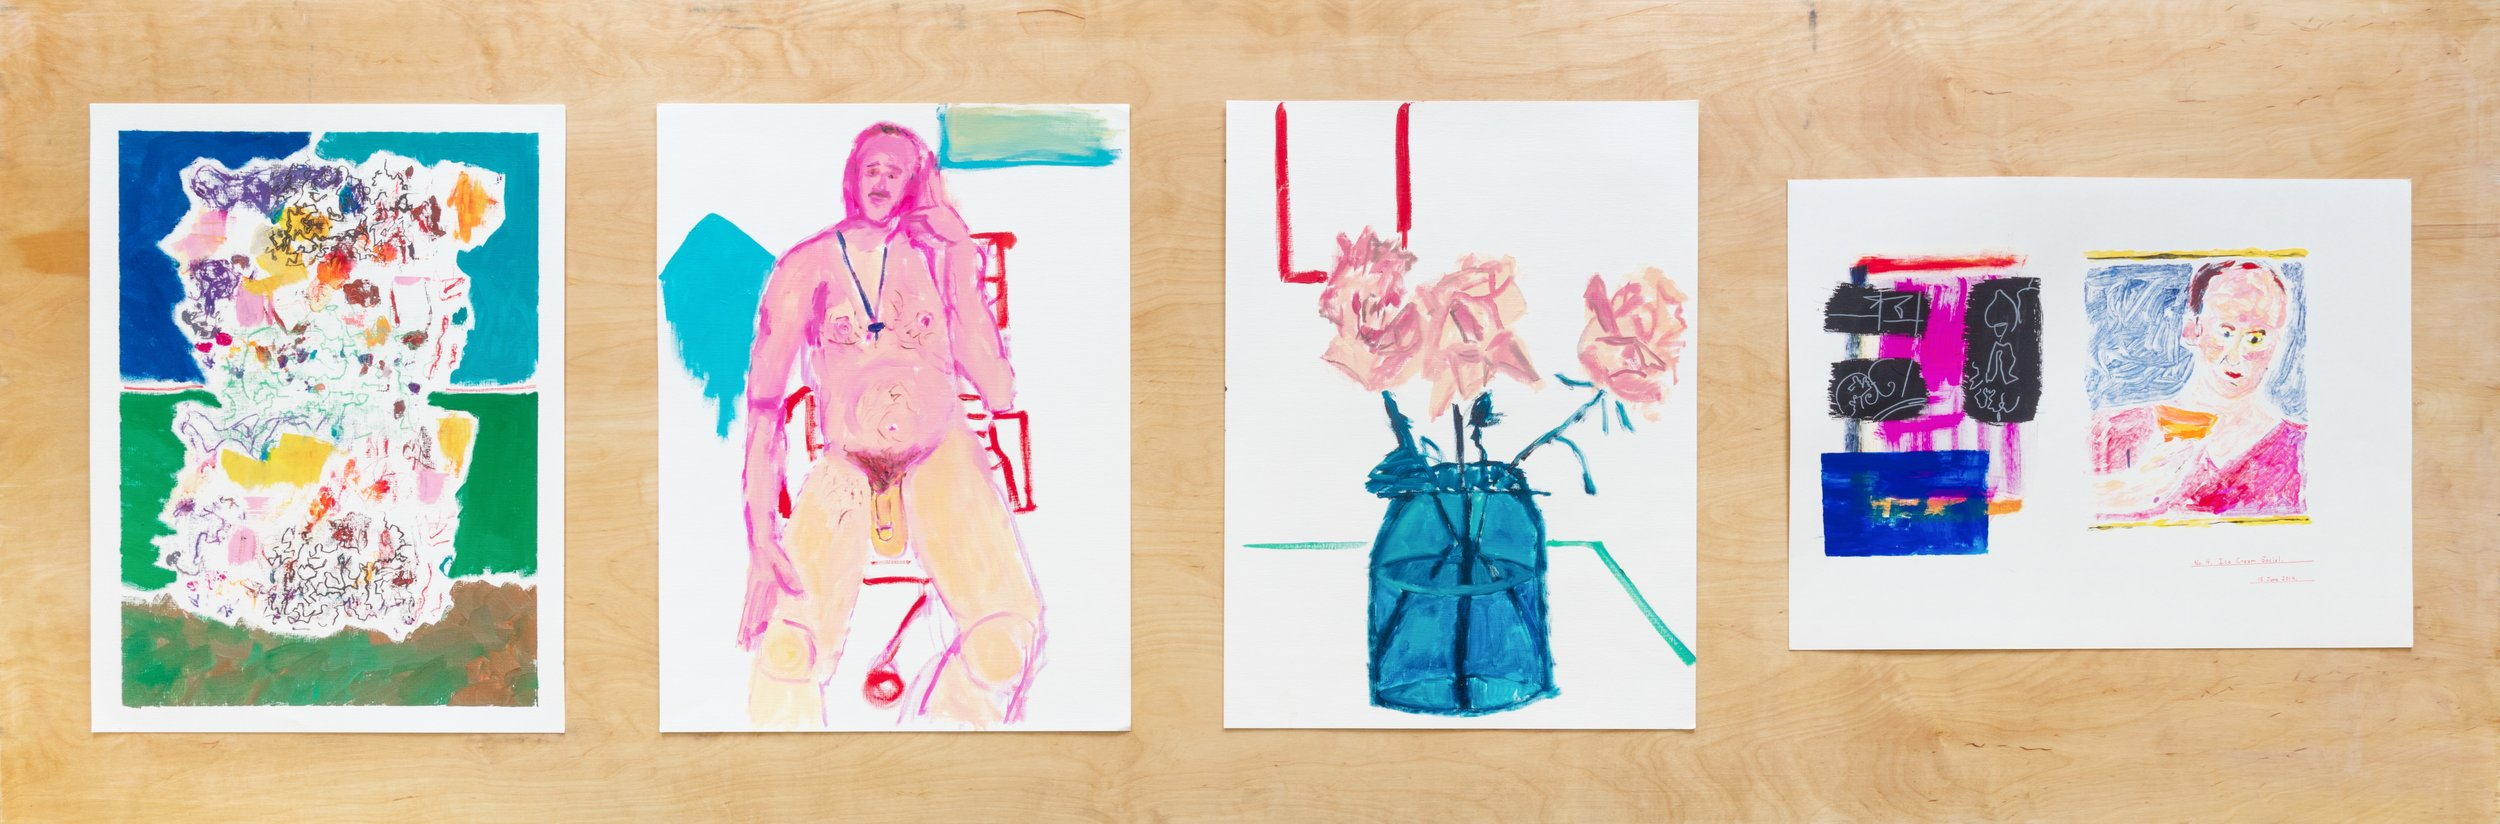 4 paintings on paper: installation shot, solo exhibition at 356 Mission, Los Angeles (2015)